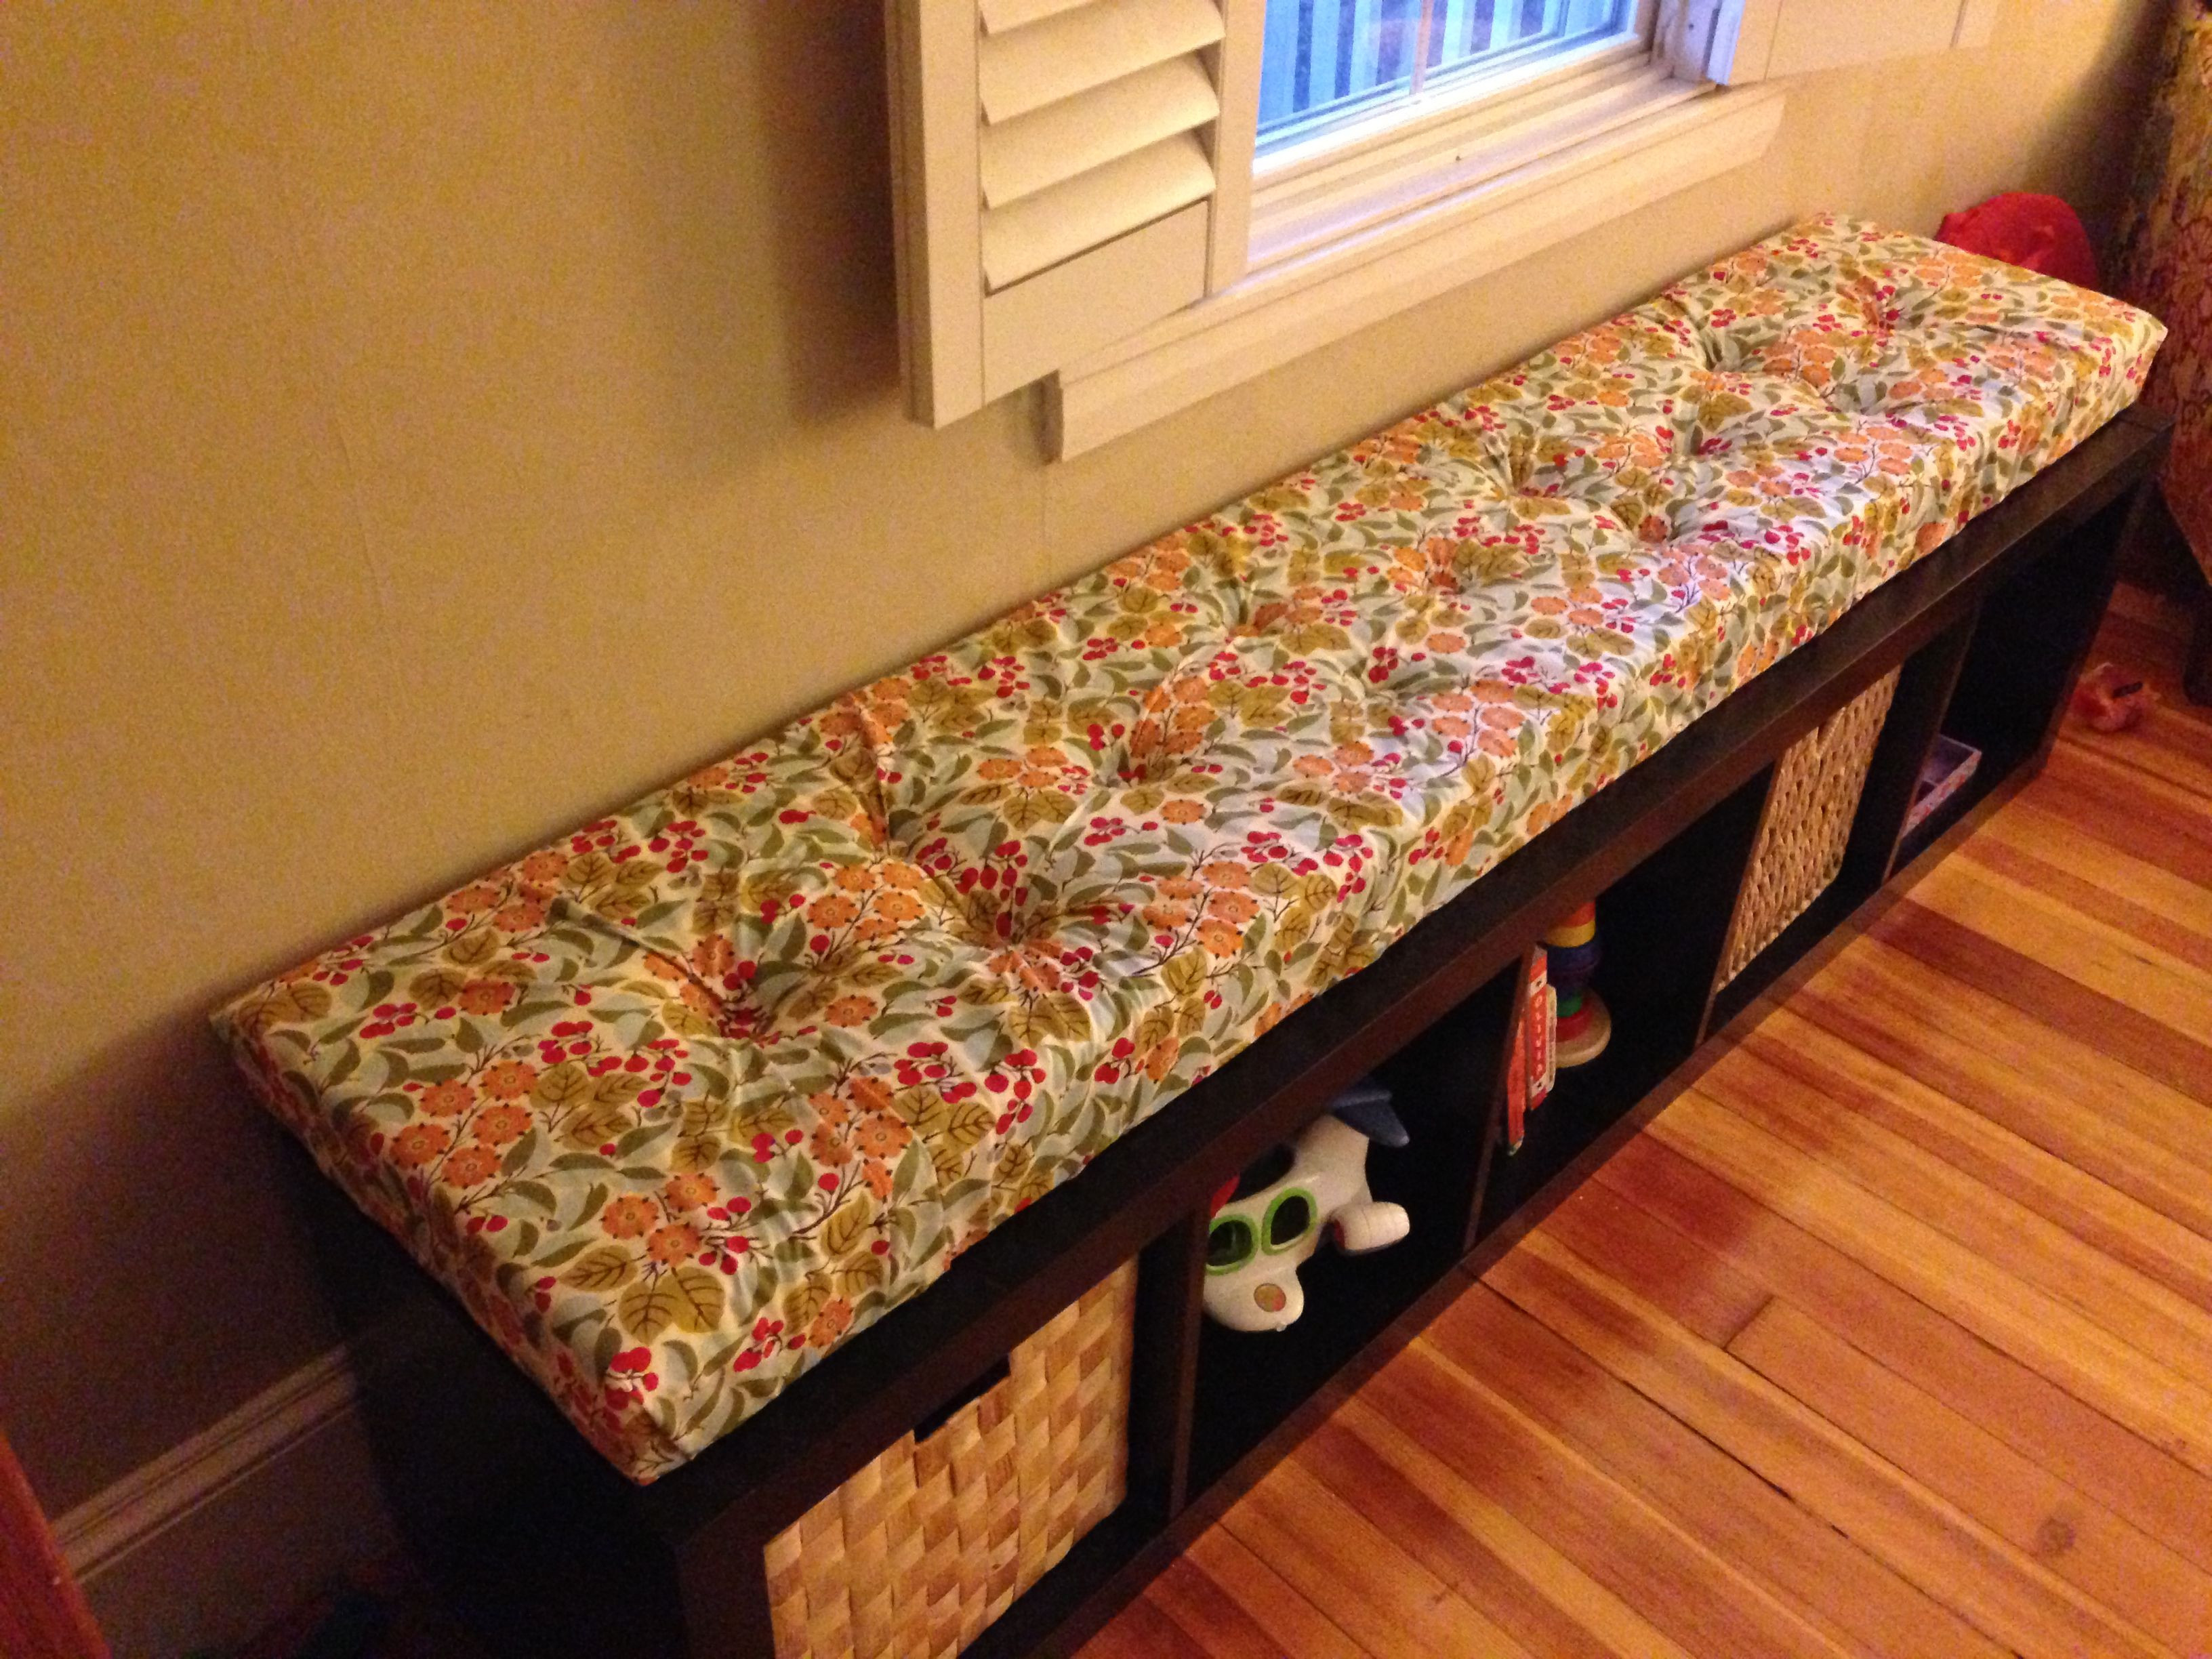 Best ideas about DIY Tufted Bench Cushion . Save or Pin DIY tufted window seat cushion for IKEA expedit shelving Now.